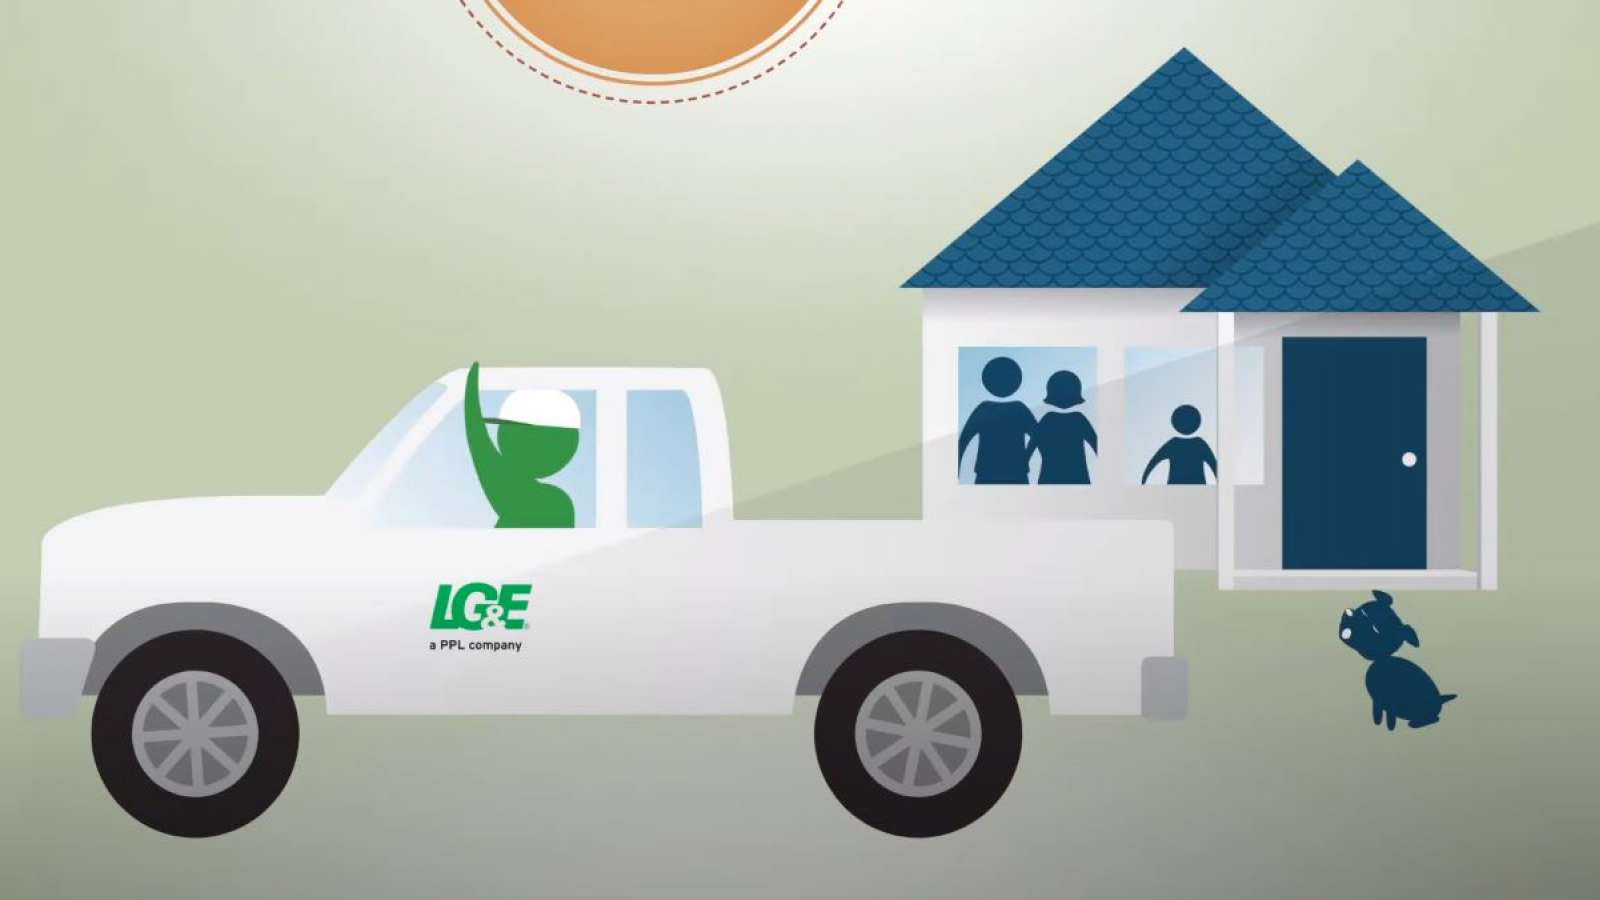 cartoon of LG&E employee in truck waving to family in a house